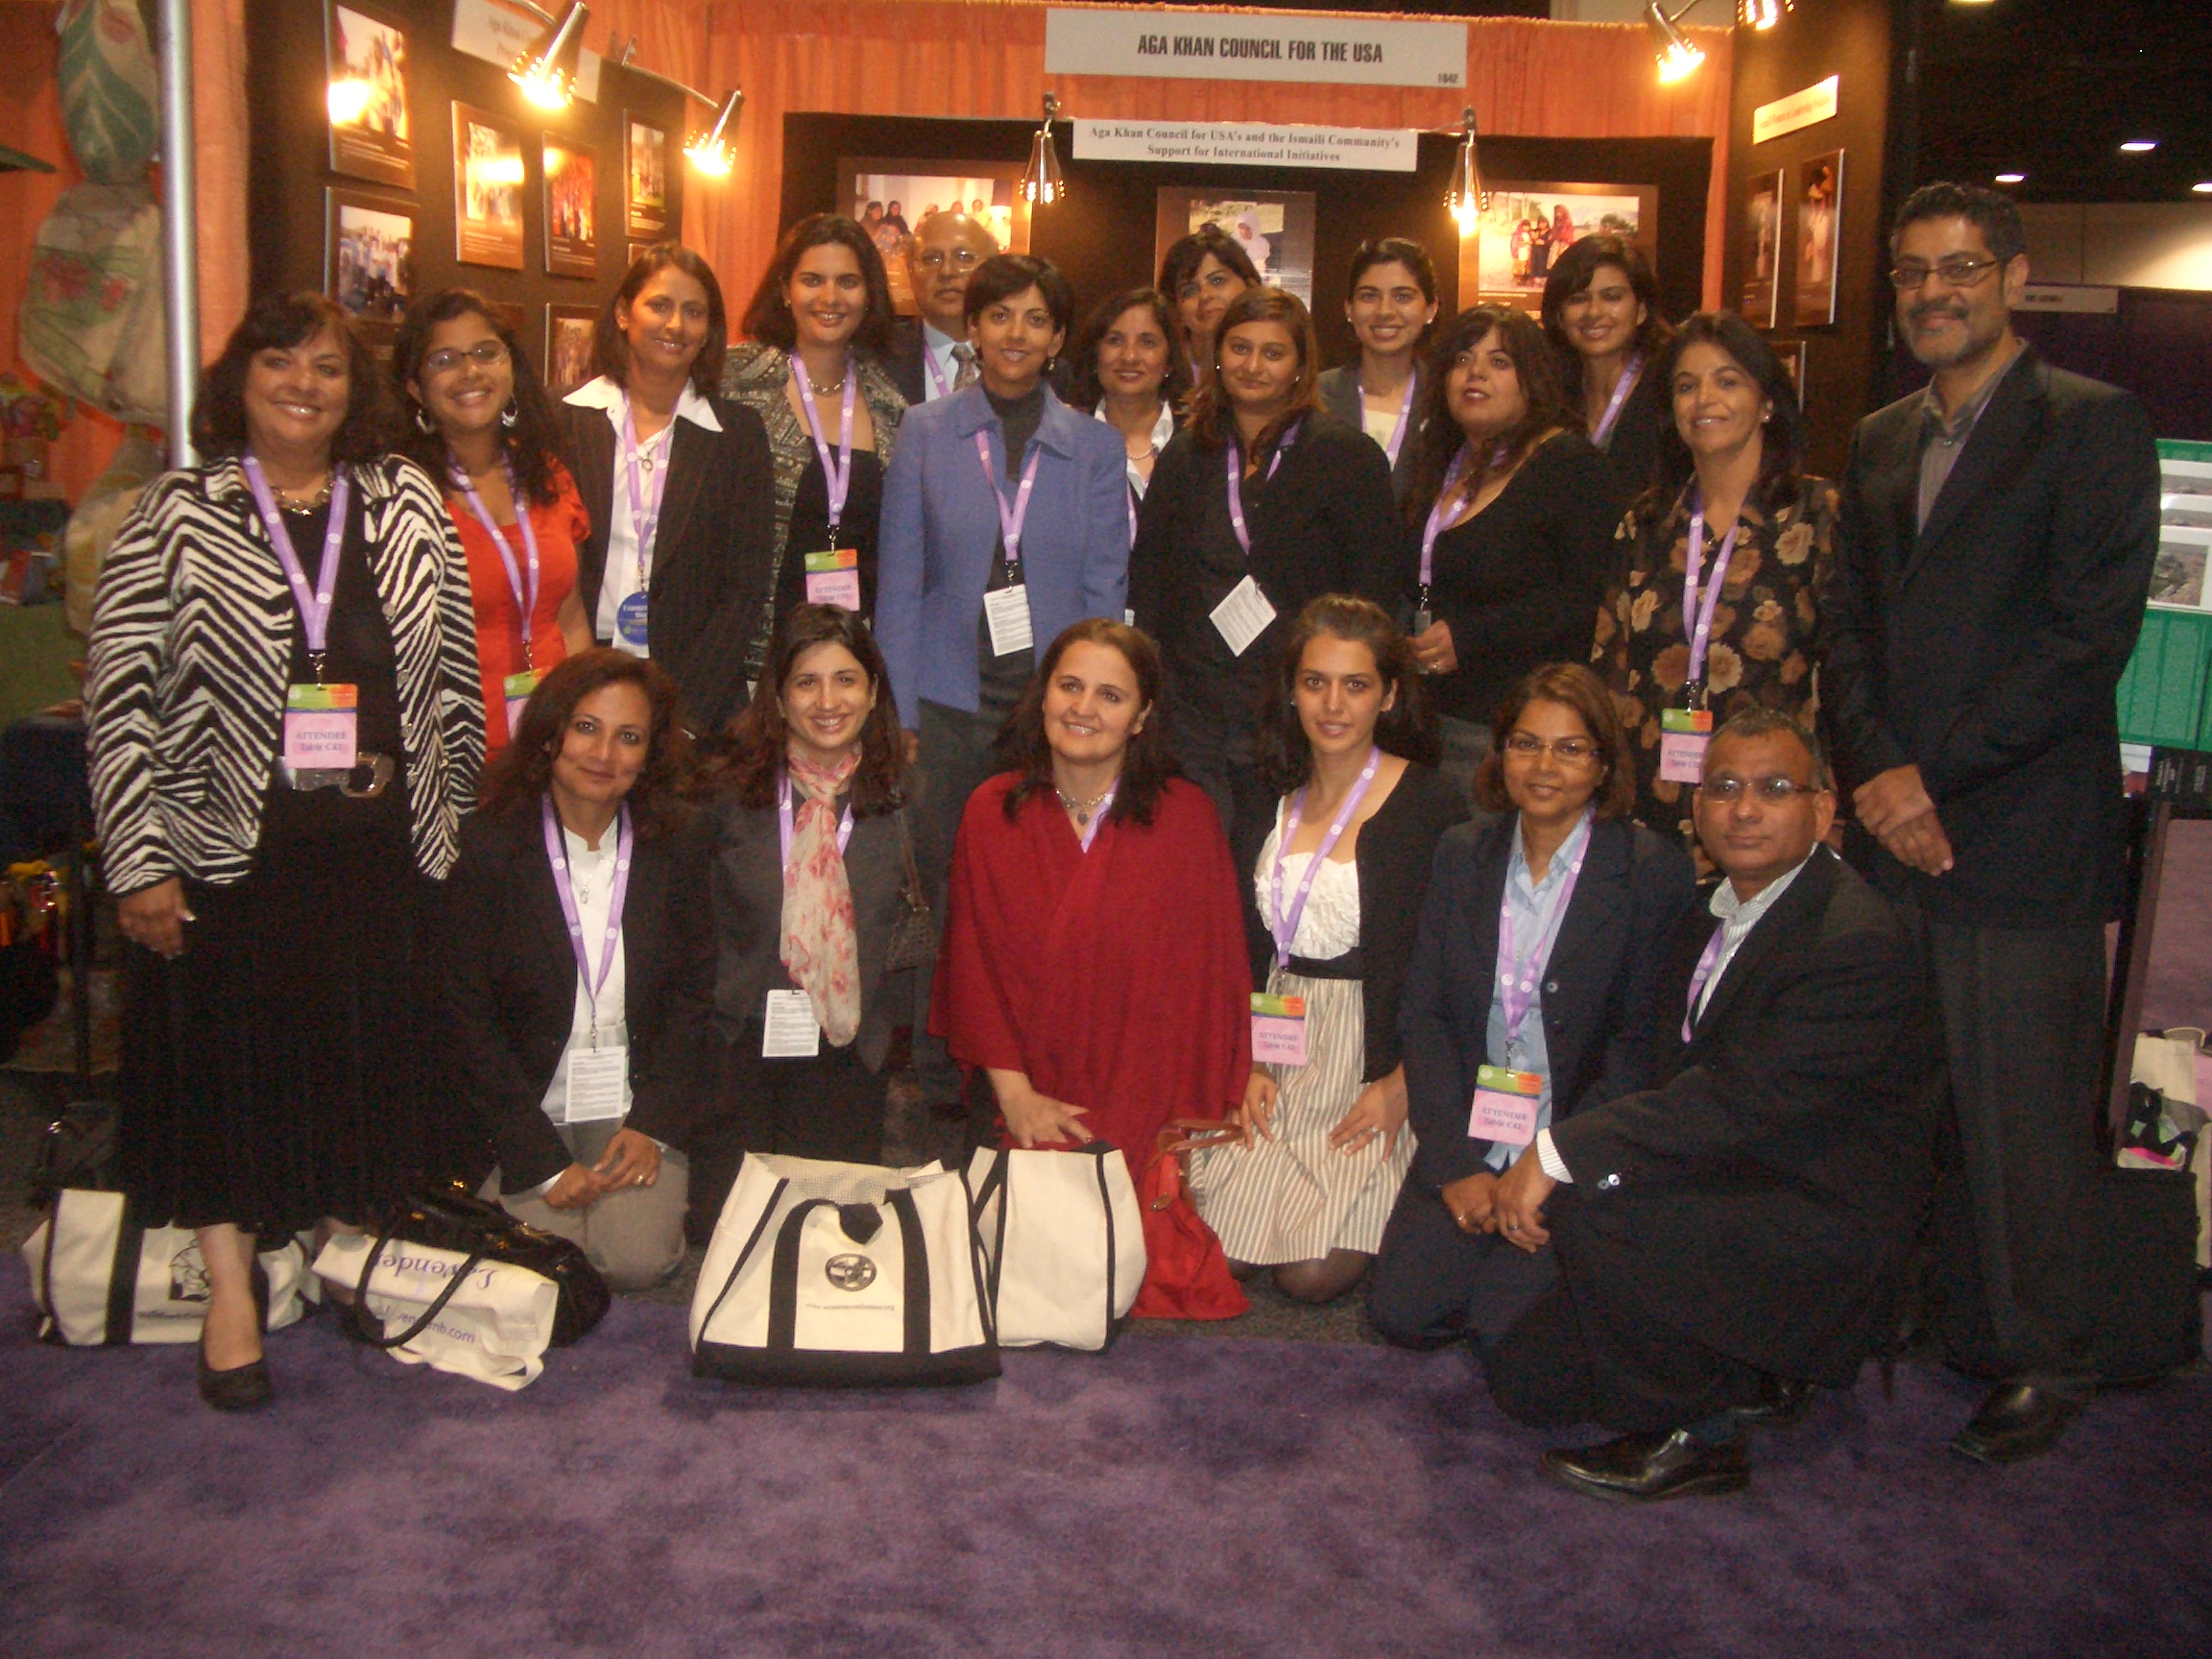 Women`s Conference participants at the Ismaili Council for the USA exhibition booth. Photo: Faheen Allibhoy